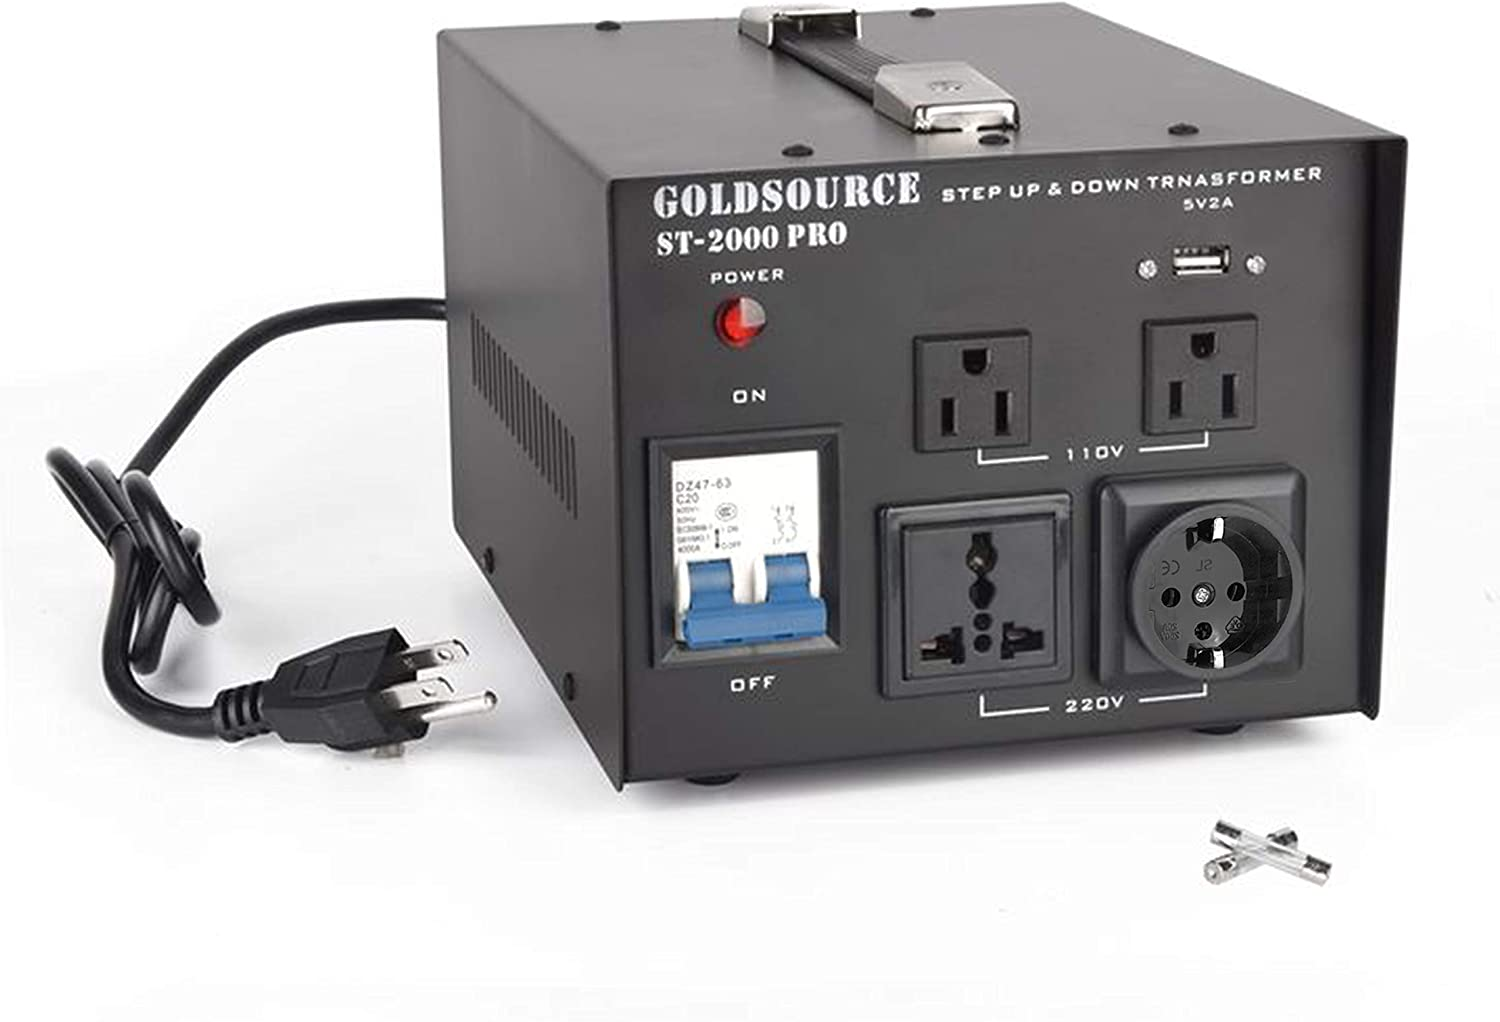 Universal Schuko AC Outlets /& DC 5V USB Port by Goldsource 1000W Auto Step Up /& Step Down Voltage Transformer Converter ST-Pro Series Heavy-Duty AC 110//220V Converter with US Standard